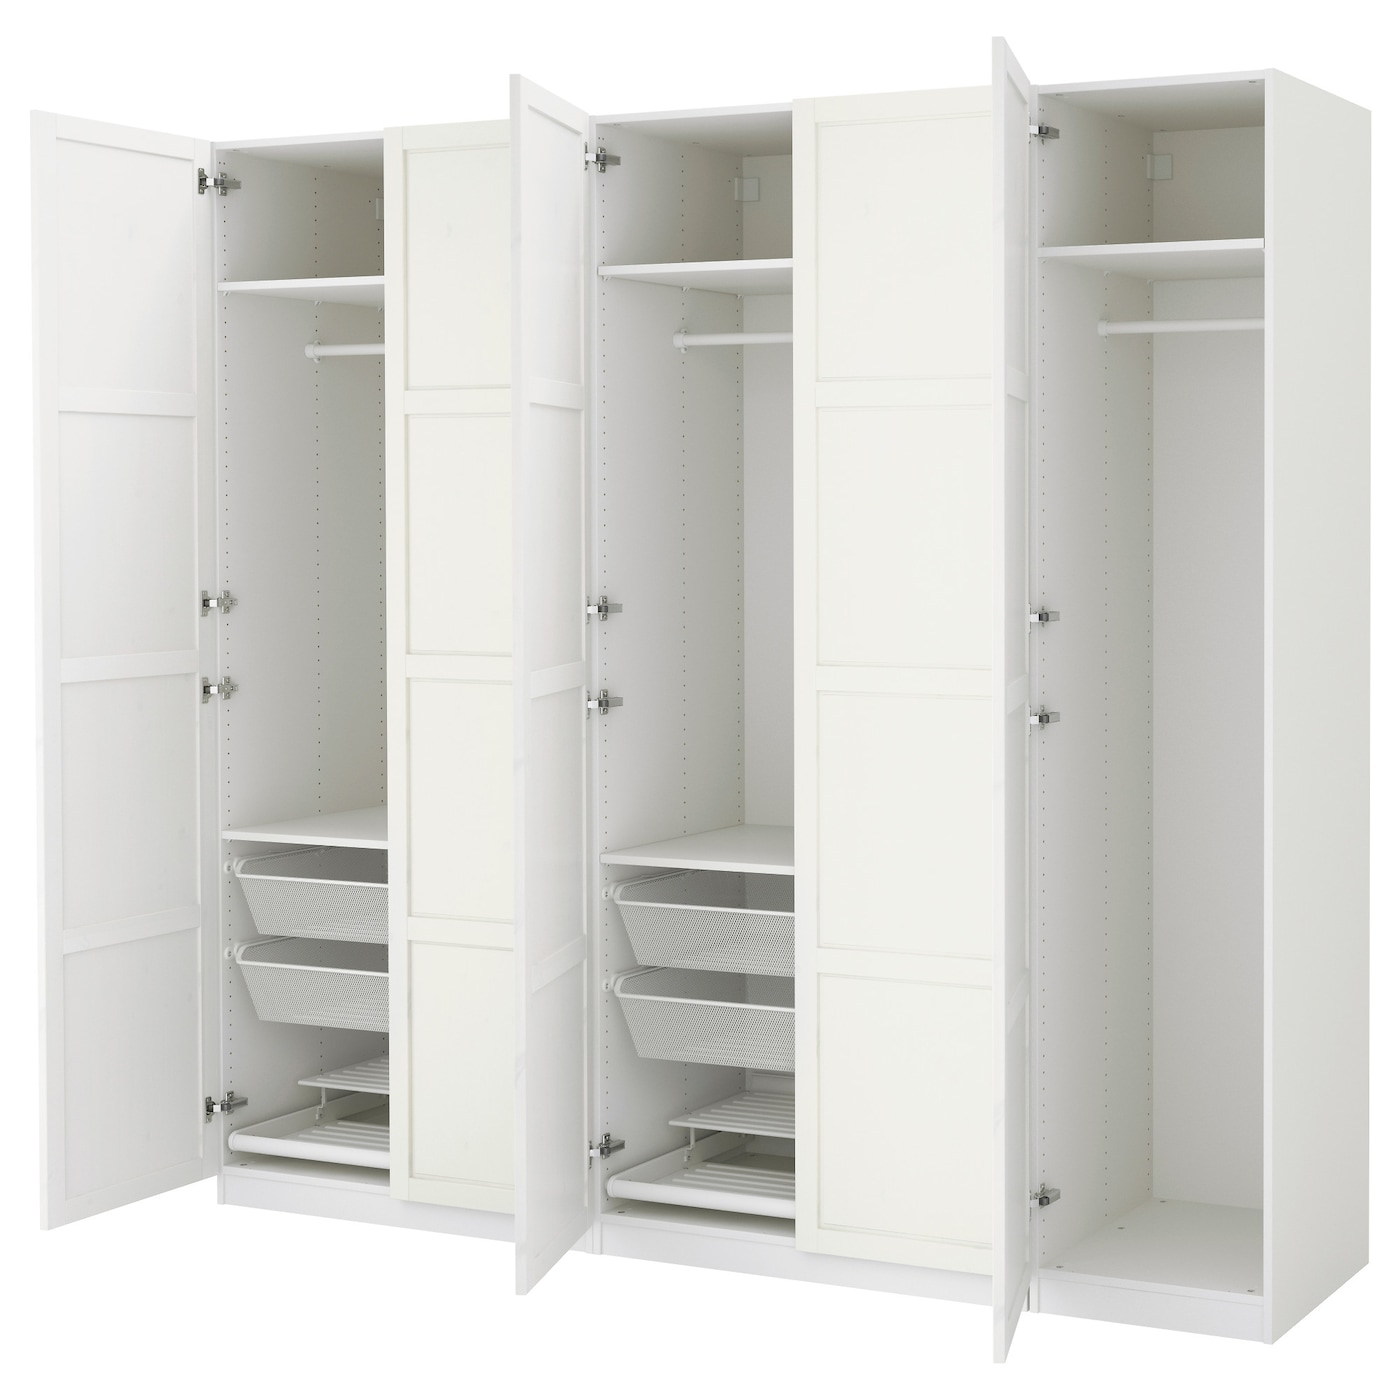 pax armoire penderie blanc hemnes teint blanc 250x60x236 cm ikea. Black Bedroom Furniture Sets. Home Design Ideas